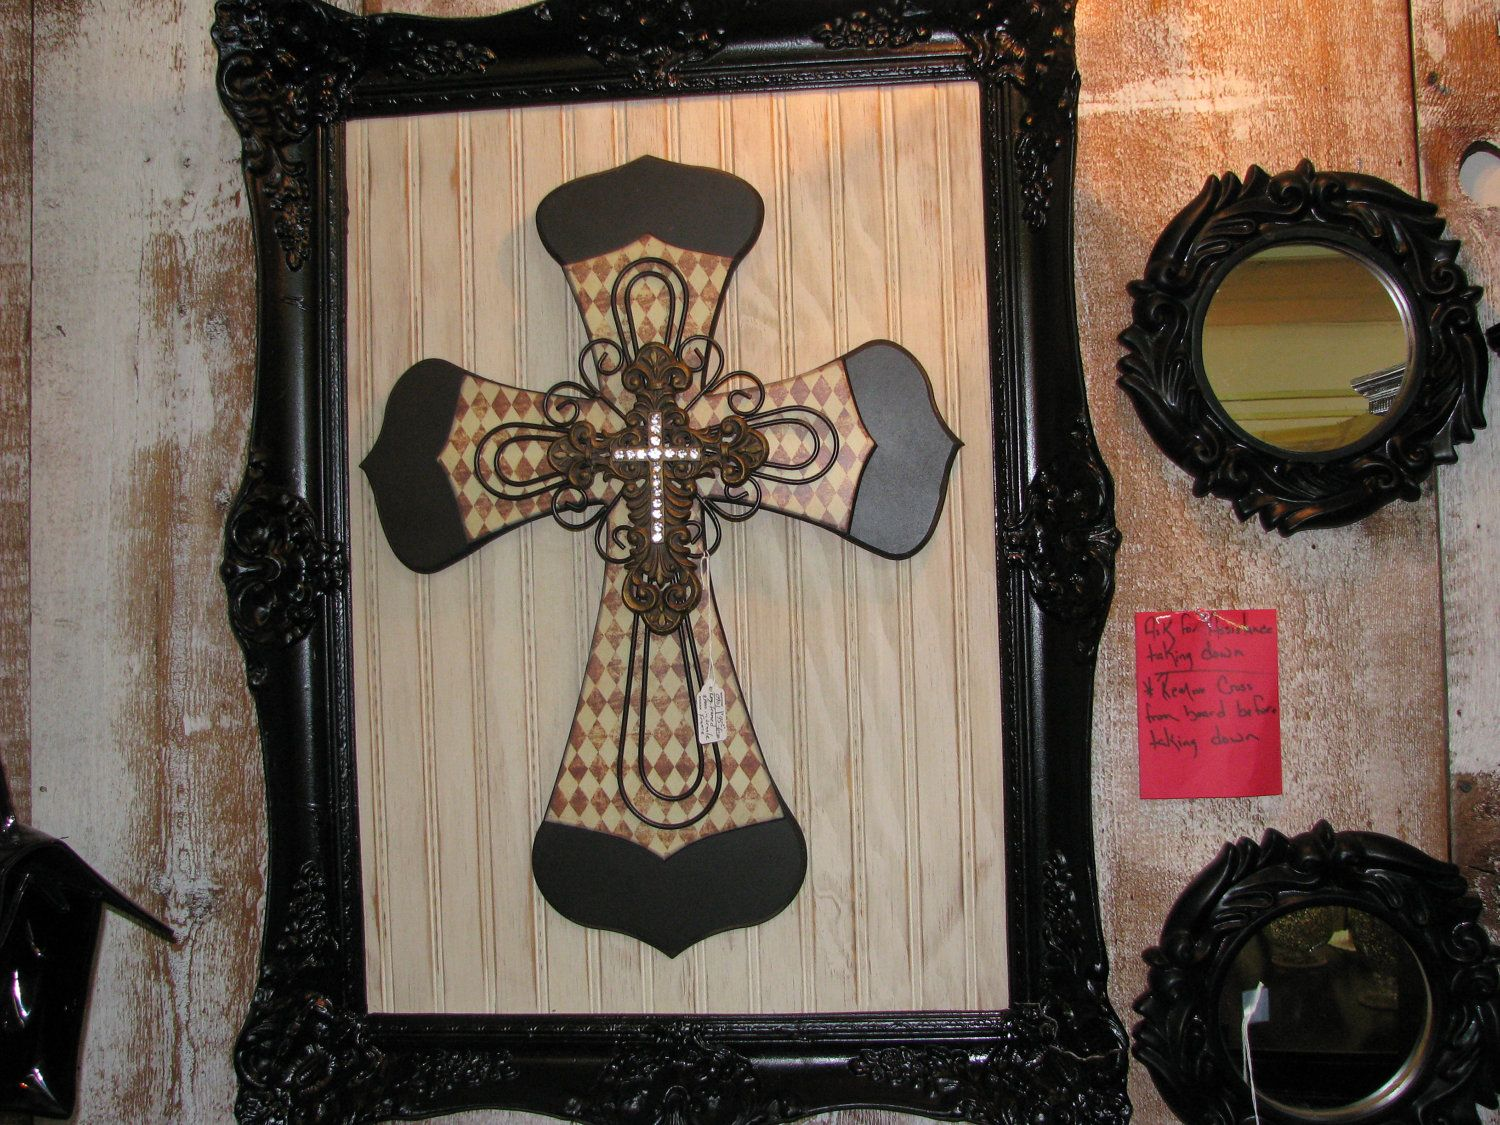 Shabby Chic, Rustic, Faith, Home Decor Cross Framed Art. $125.00, Via